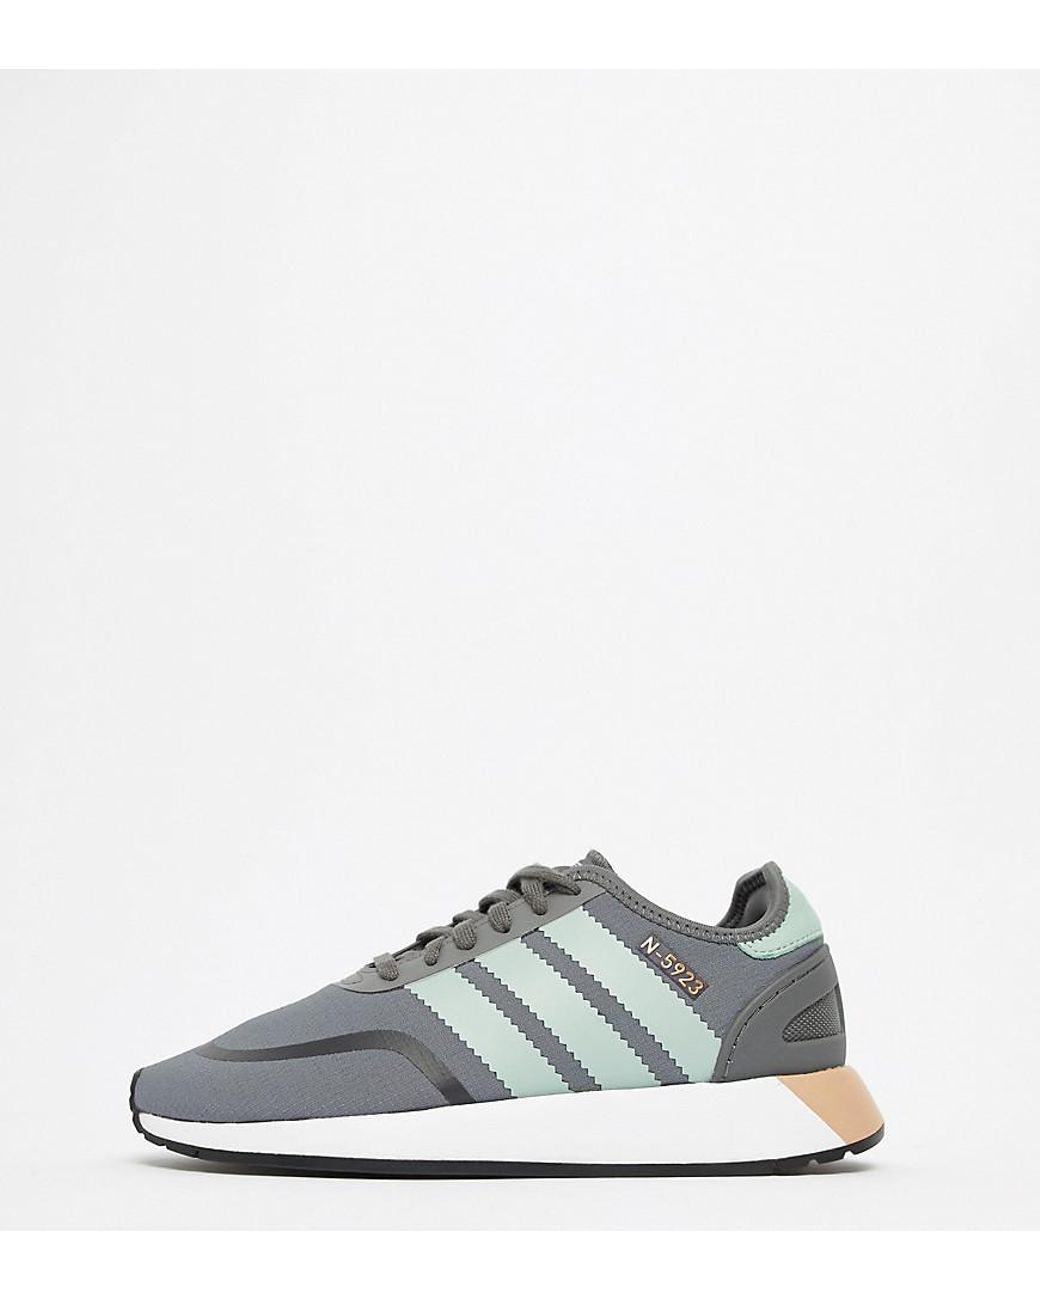 29f8e5fcc5a adidas Originals N-5923 Runner Trainers In Grey And Mint in Gray - Lyst